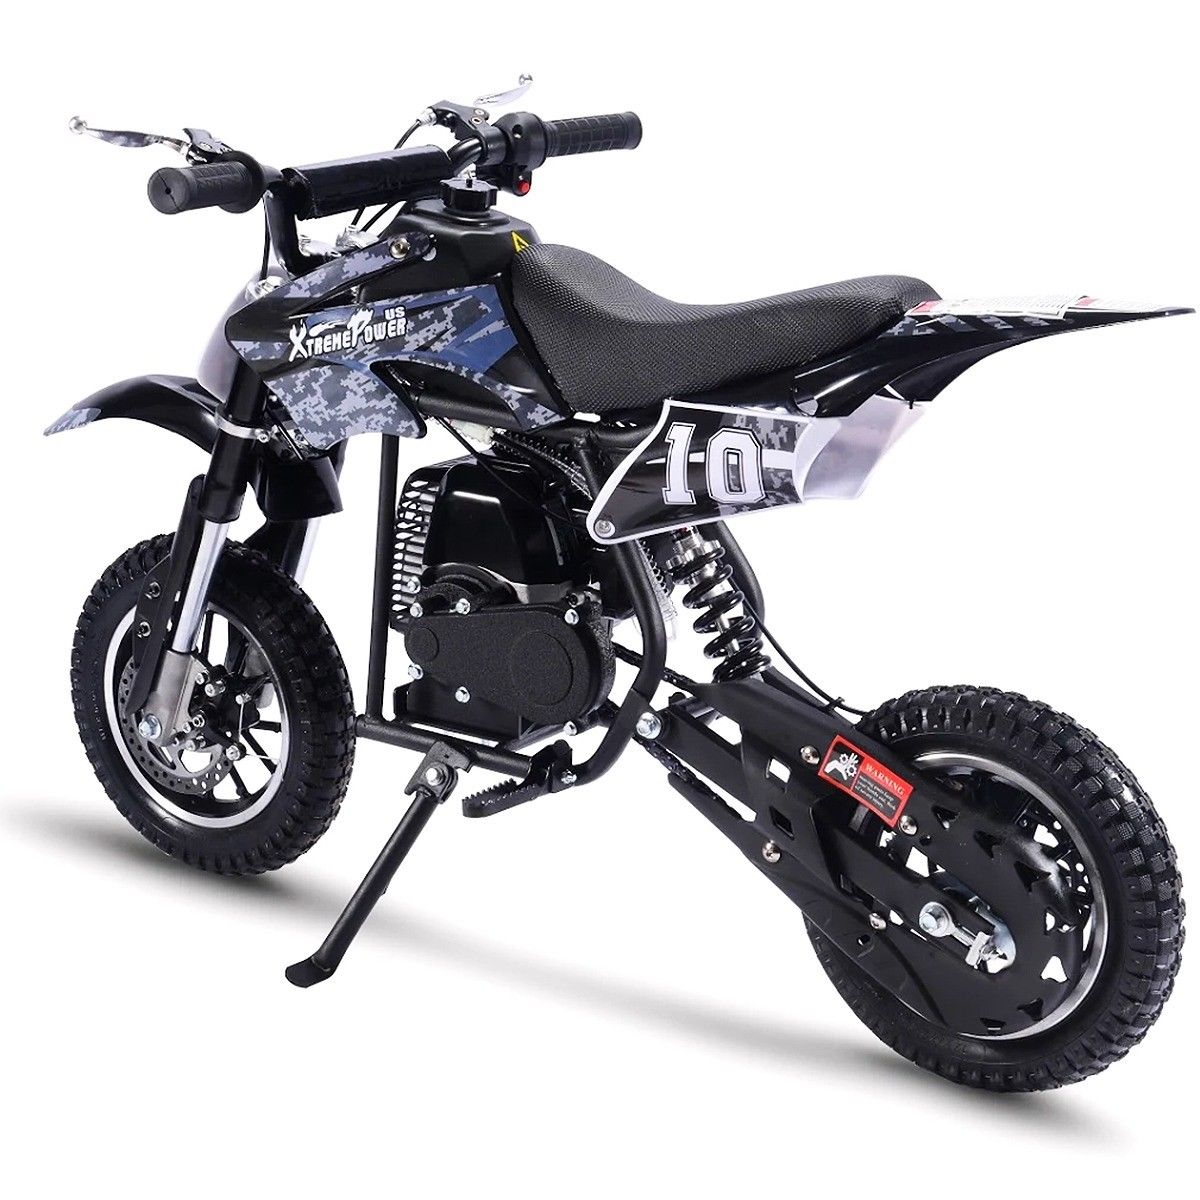 49cc-2-Stroke-Gas-Motorized-Mini-Dirt-devil-scooter-Bike-Pocket-Bike-Pit thumbnail 12